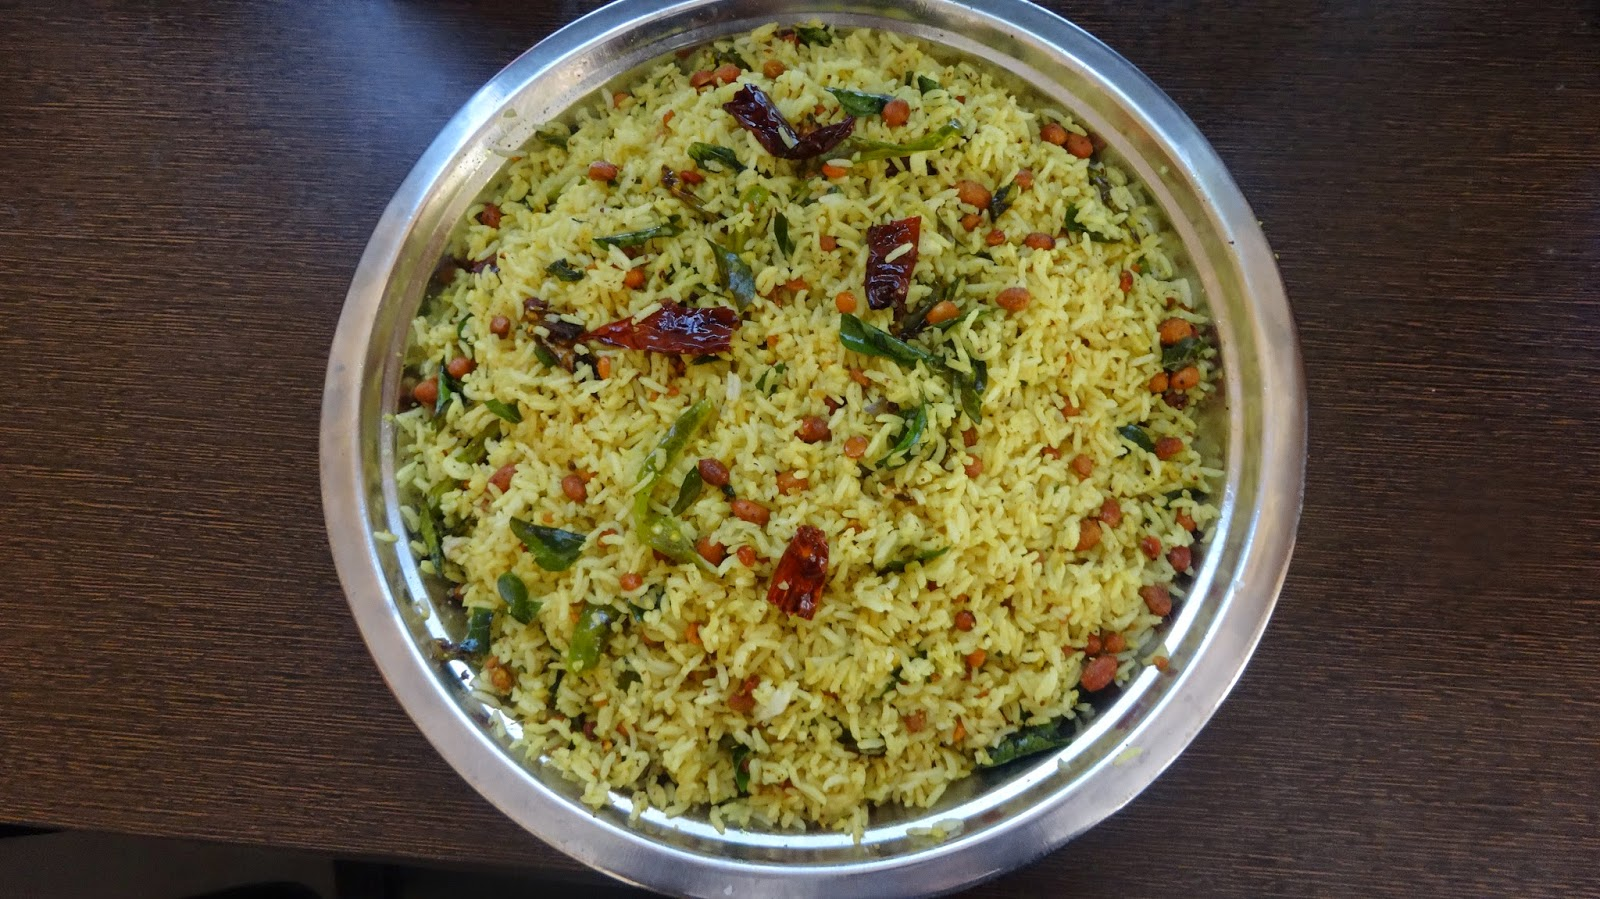 Lemon rice preparation in telugu recipe table cooked plain rice 2cups lemon 2 grated carrot a handful green chillies 5slit lenth wise ground pea nuts 2tbsp mustard seeds 1tsp channa dal 1tbsp ccuart Image collections